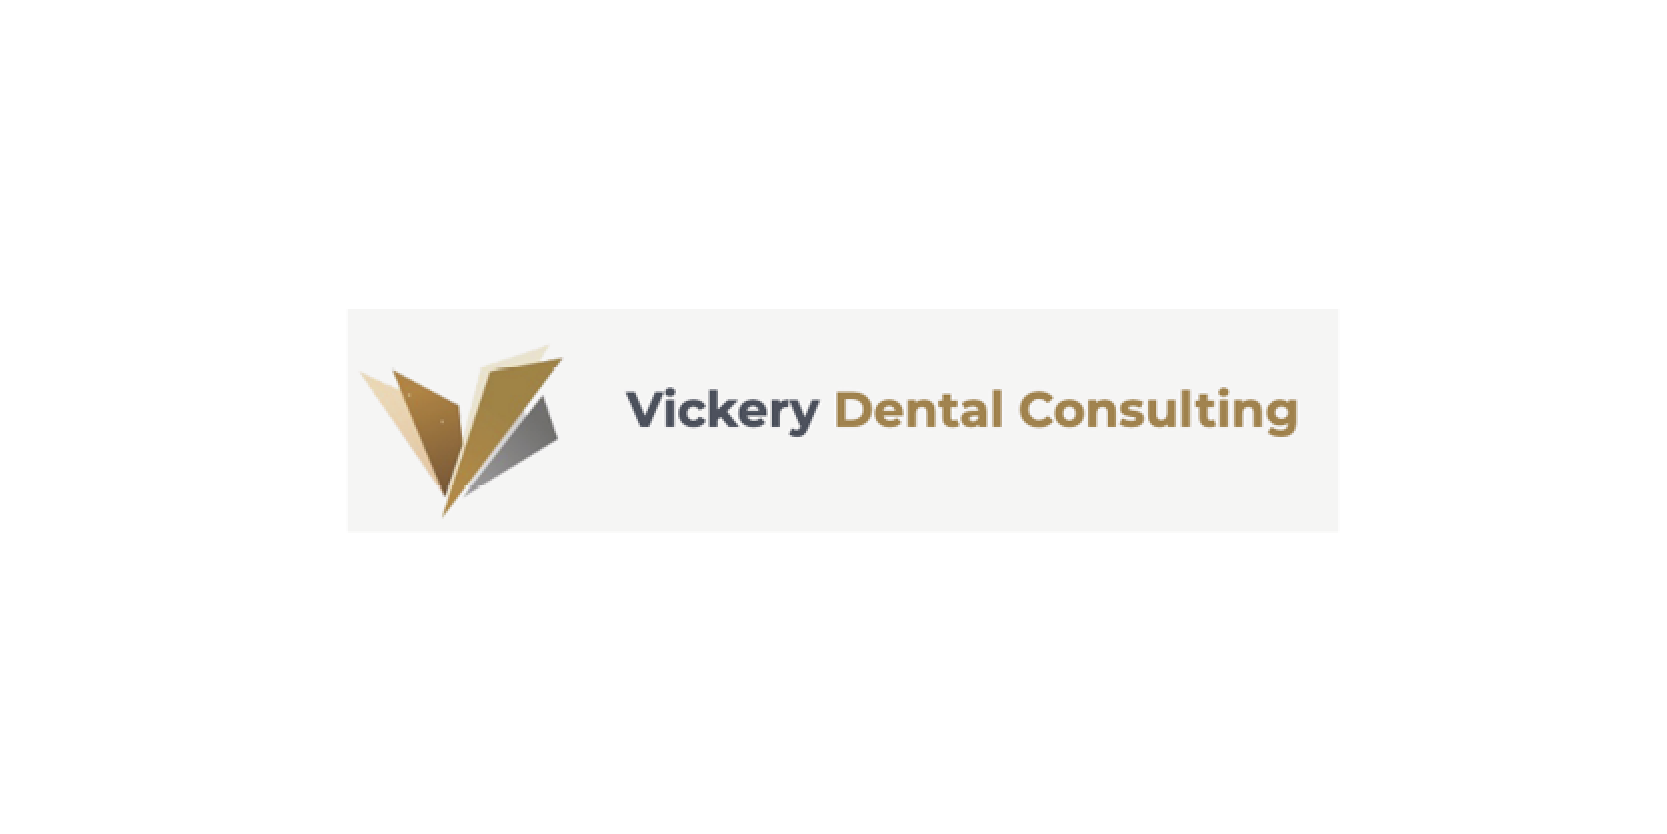 - Since 2001, Eric Vickery has led teams to improving their practices through Coaching. He is an expert on case acceptance verbal skills, the DISC personality profile, stopping cancellations, handling patient objections, and asking for referrals/reviews.